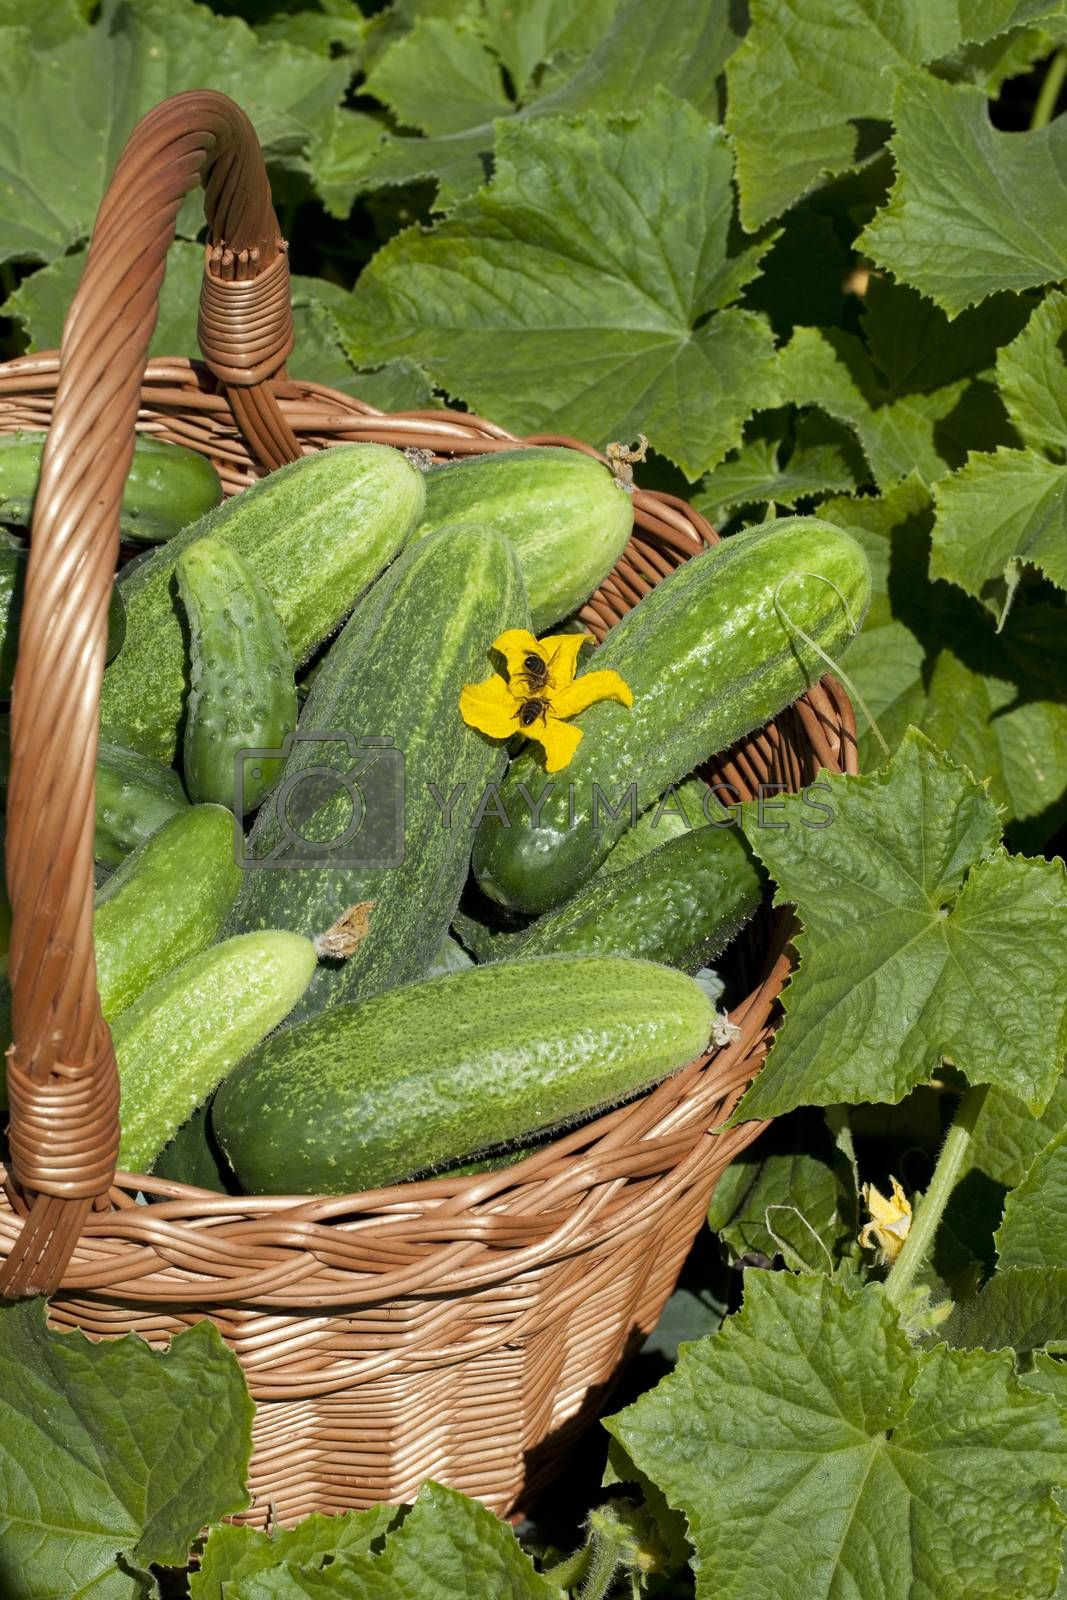 basket with young cucumbers stands on field